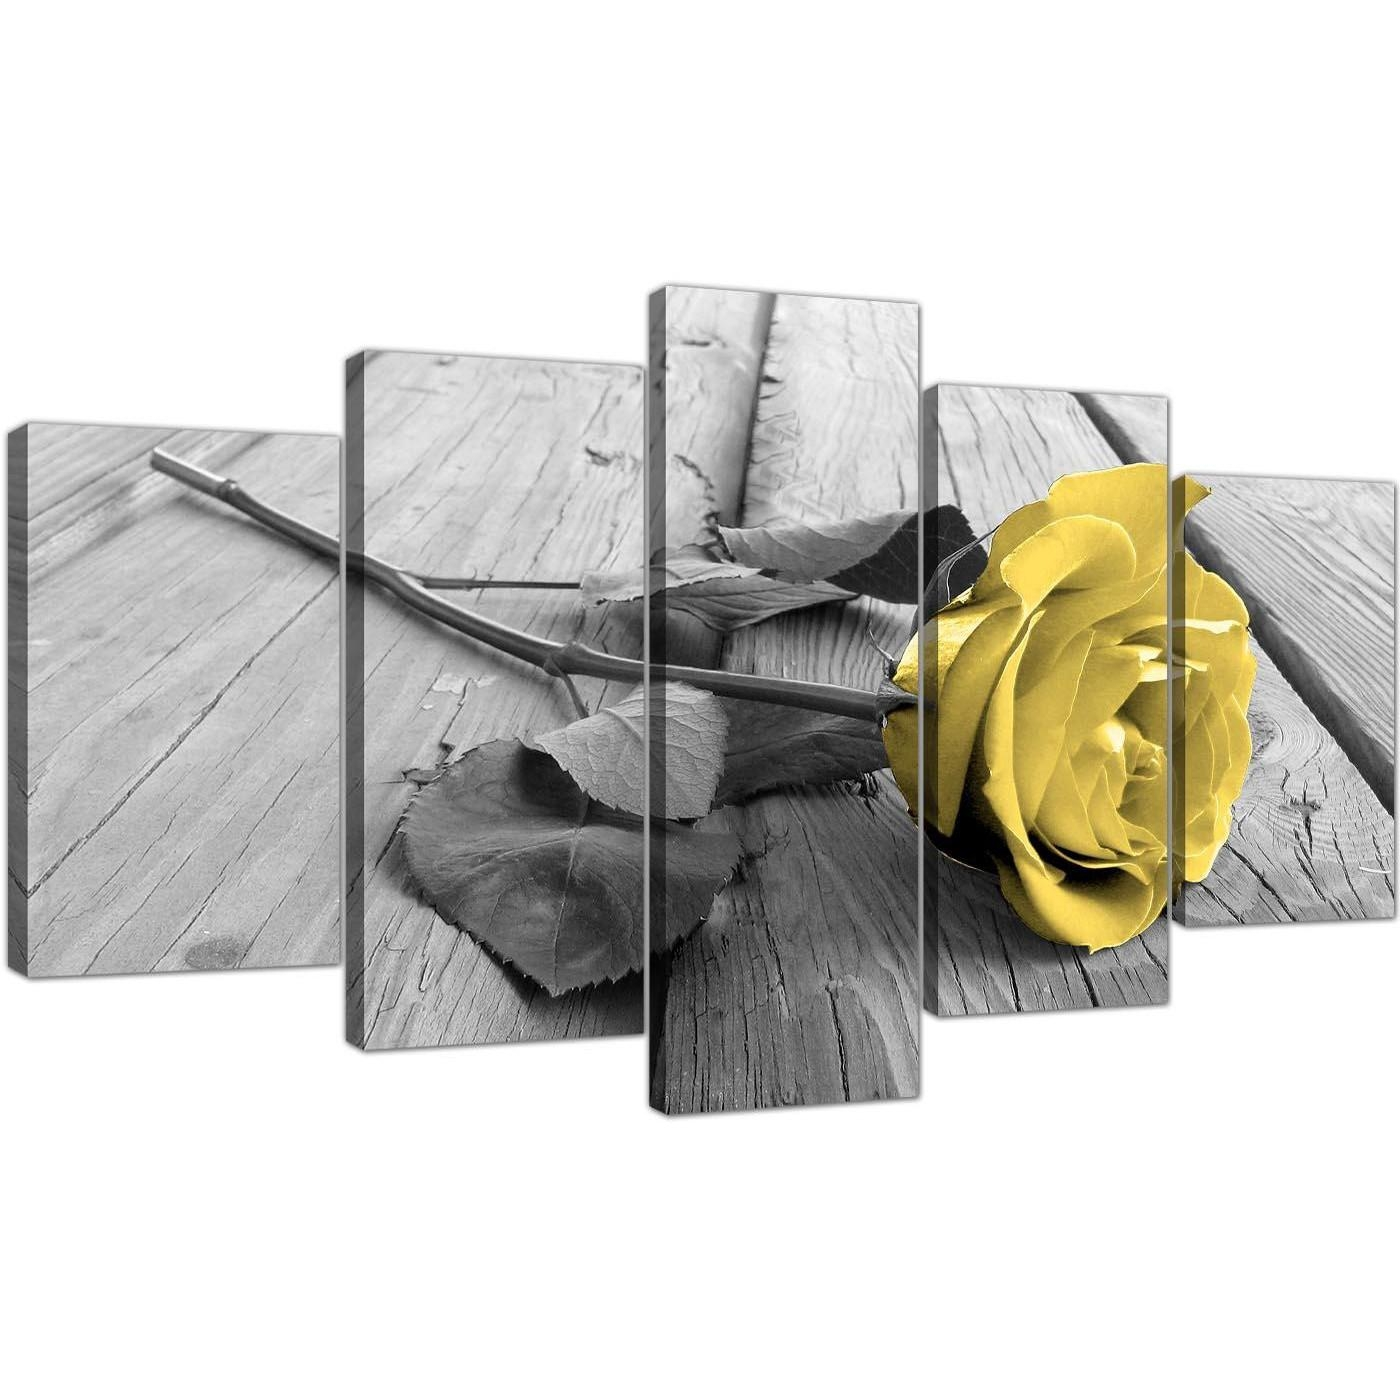 Extra Large Yellow And Grey Rose Canvas Wall Art 5 Piece In Black Throughout Large Yellow Wall Art (View 19 of 20)